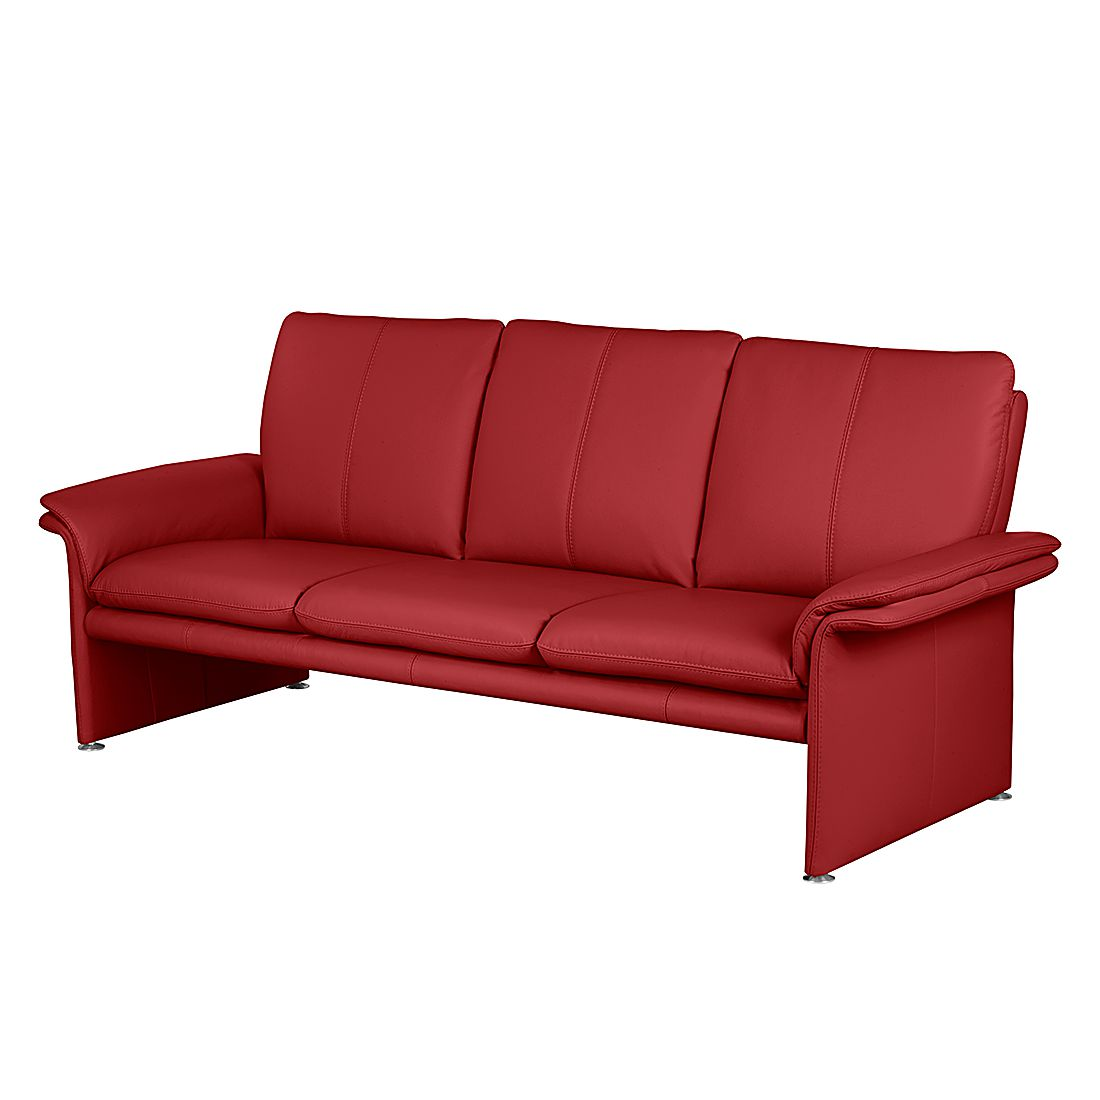 sofa capri 3 sitzer echtleder rot nuovoform g nstig online kaufen. Black Bedroom Furniture Sets. Home Design Ideas